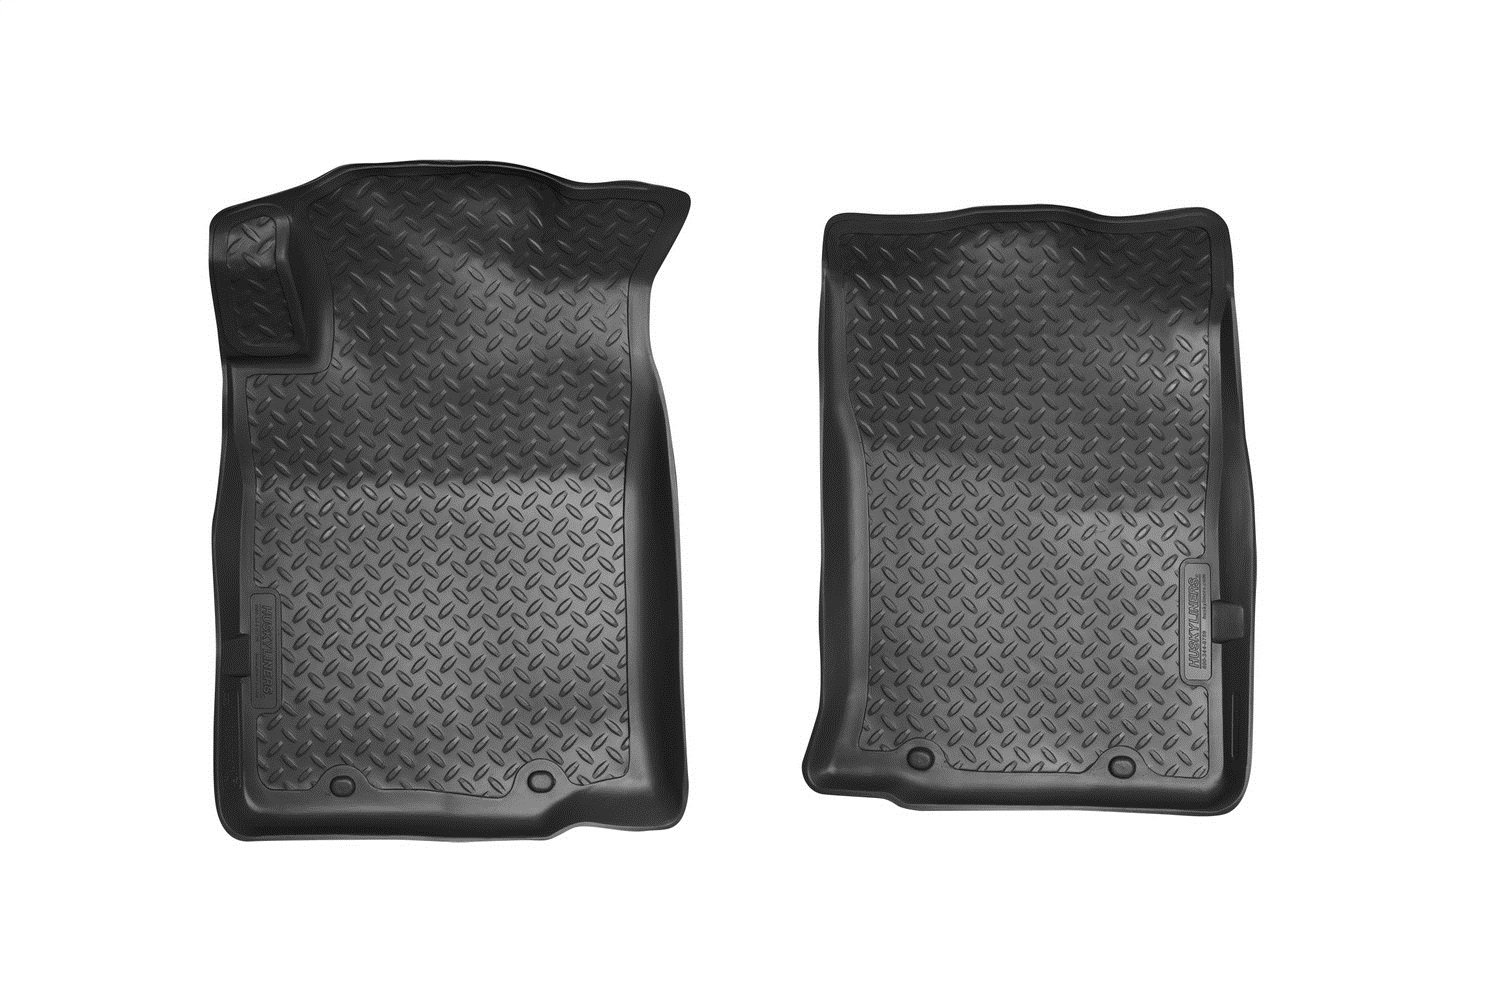 05-14 Std Cab 35471 Husky Liners Front Floor Liners Fits 05-15 Tacoma Access//Double